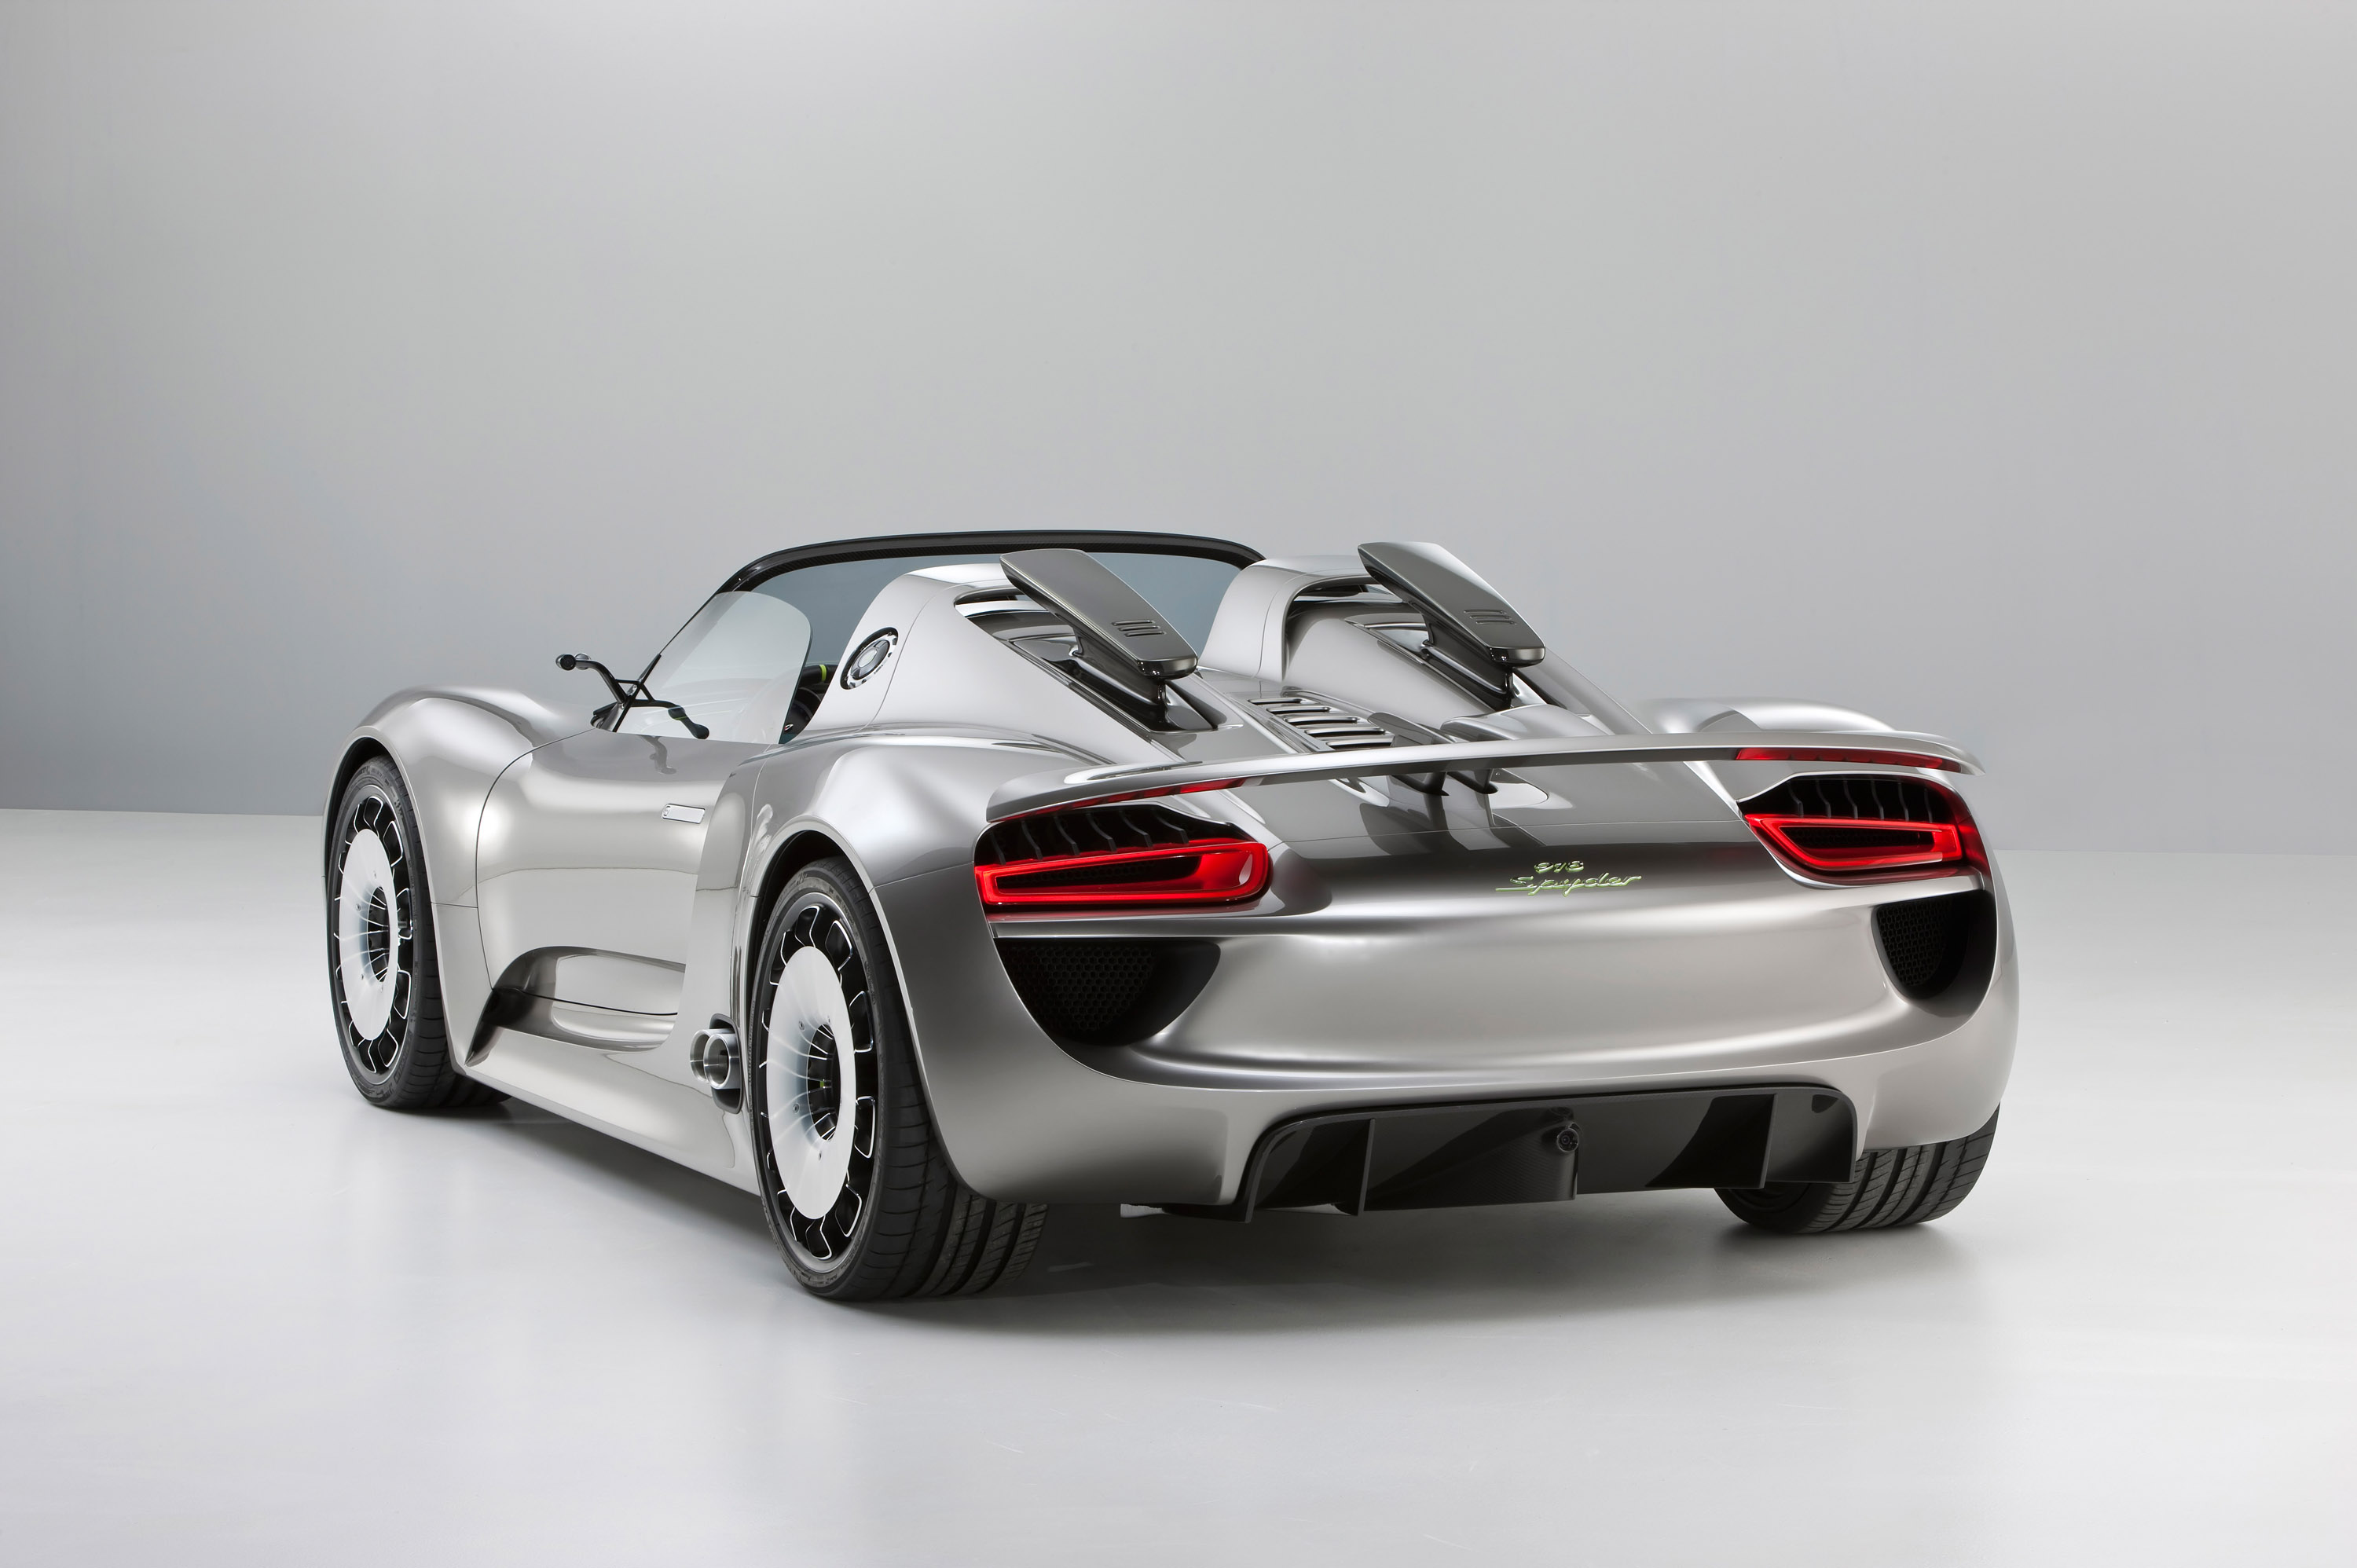 porsche 918 spyder concept fully revealed. Black Bedroom Furniture Sets. Home Design Ideas